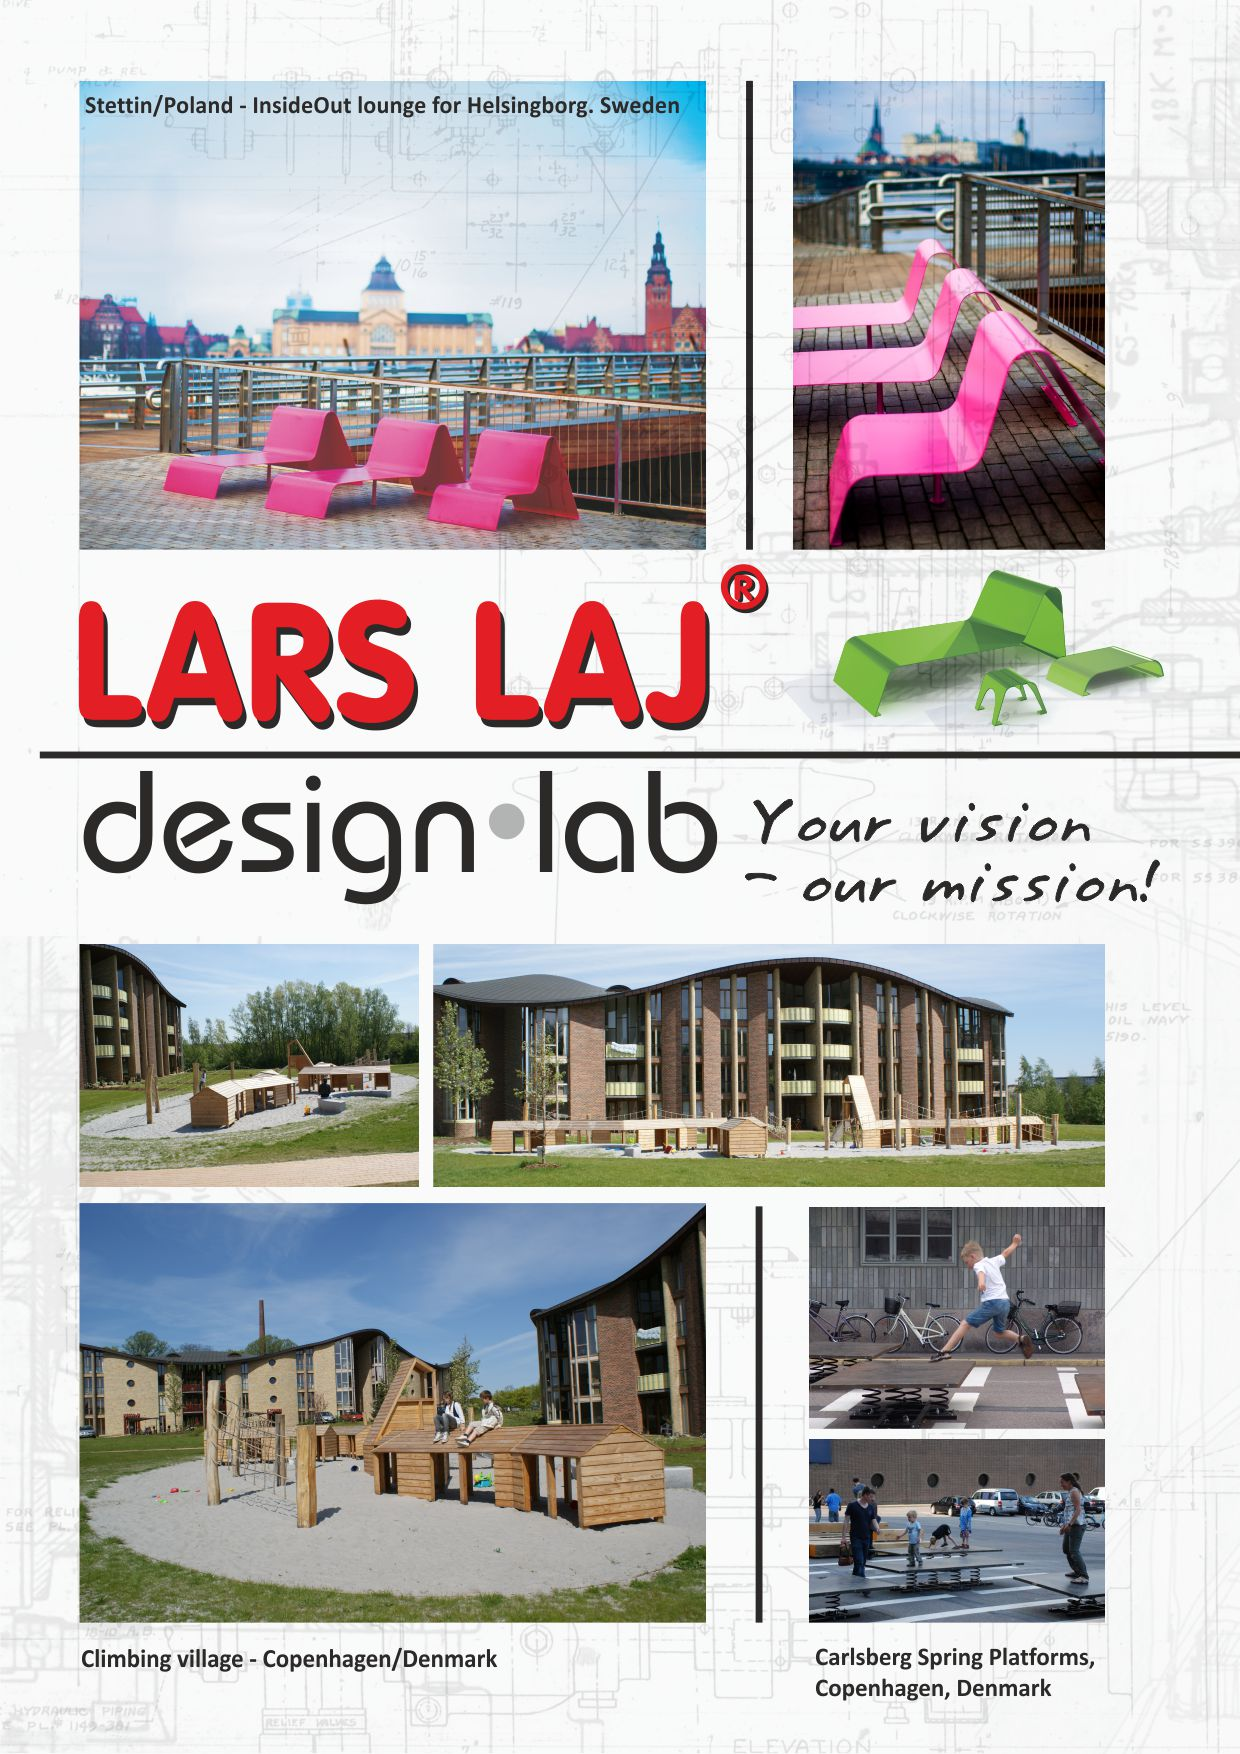 Lars Laj Design Lab